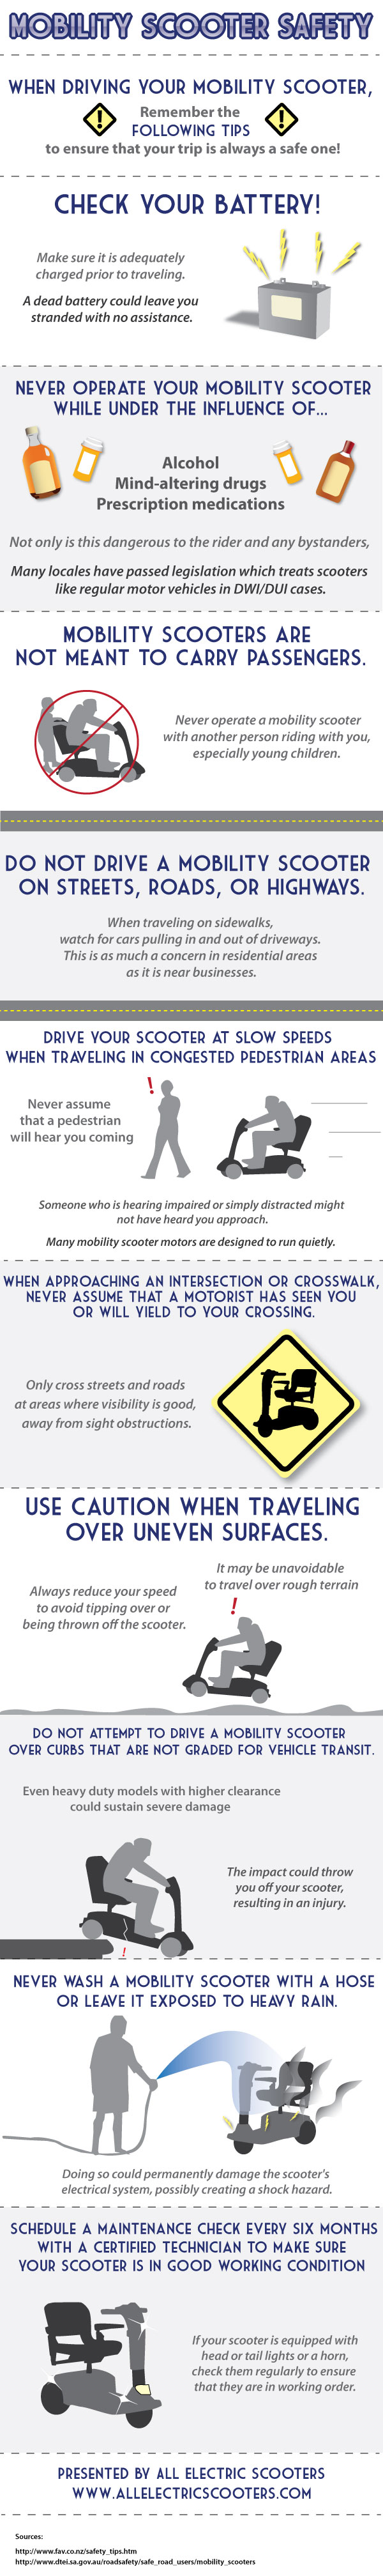 Mobility Scooter Safety